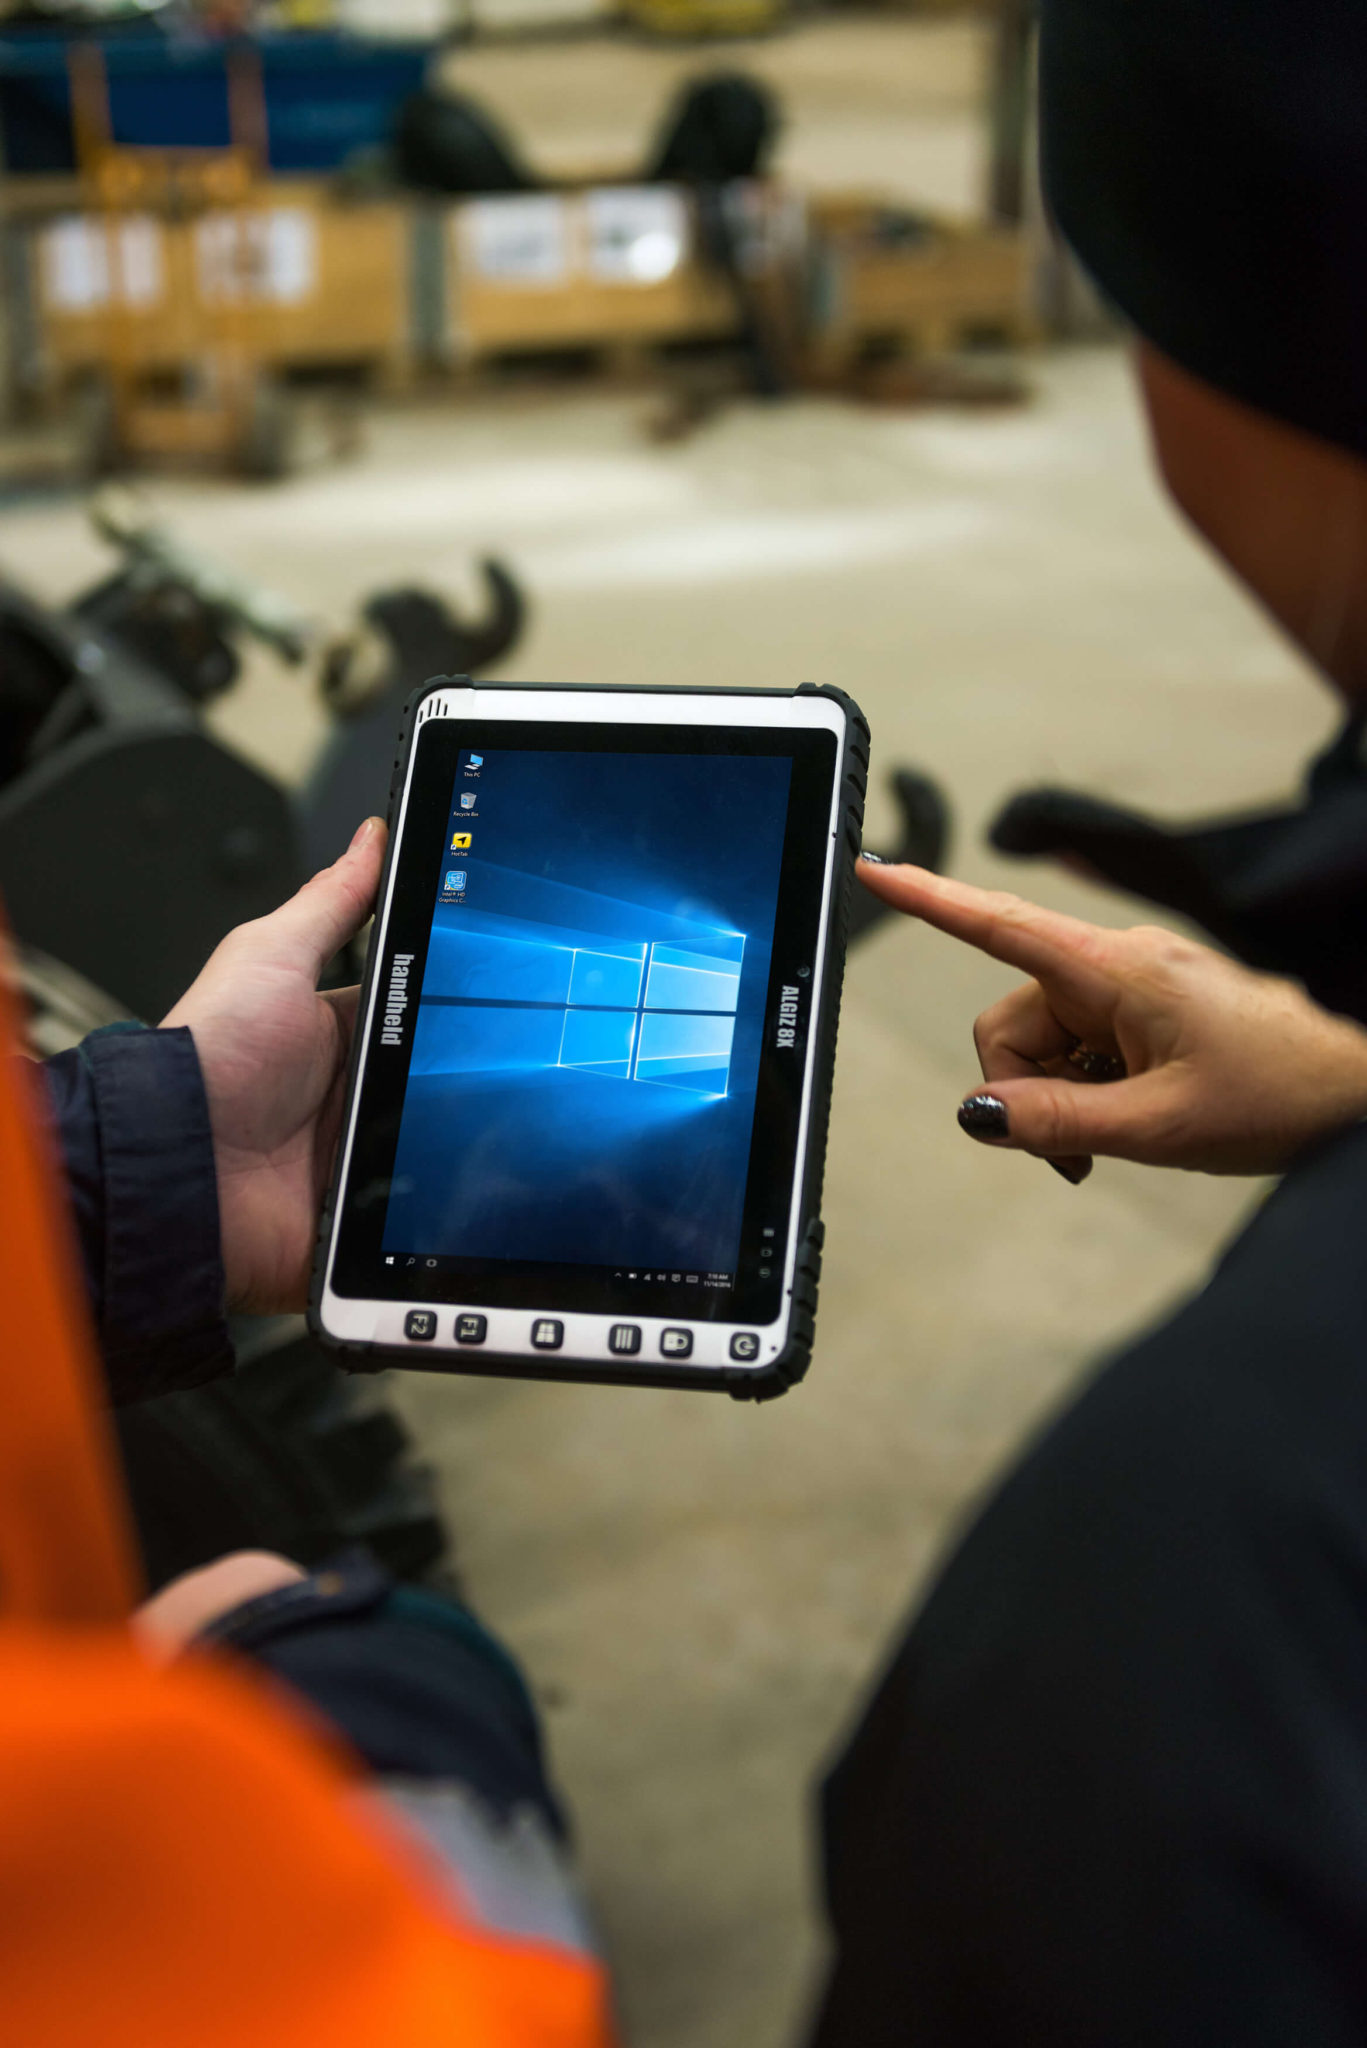 Handheld-Algiz-8X-rugged-tablet-portrait-windows(1)